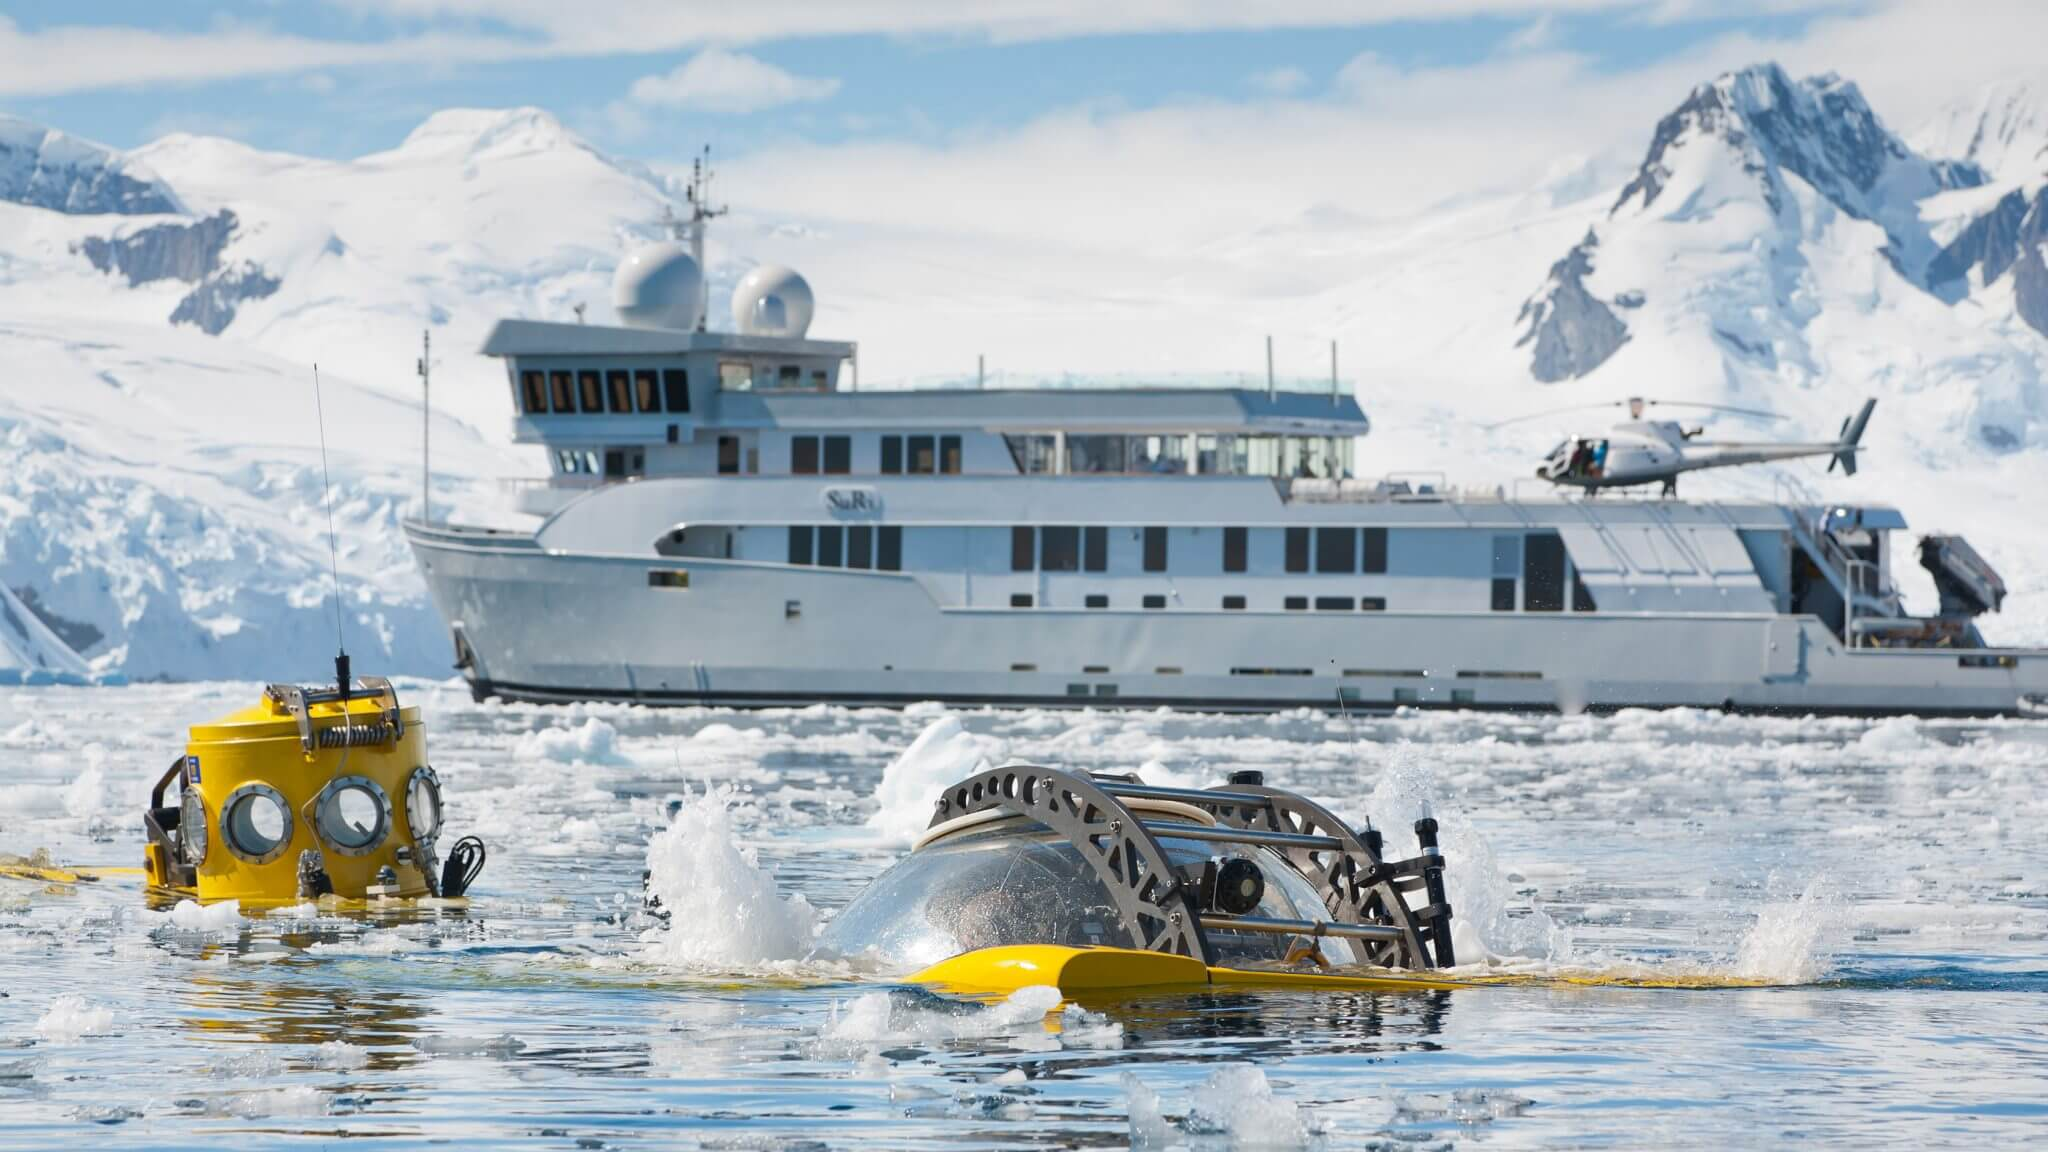 Antarctica - submerging into the unknown